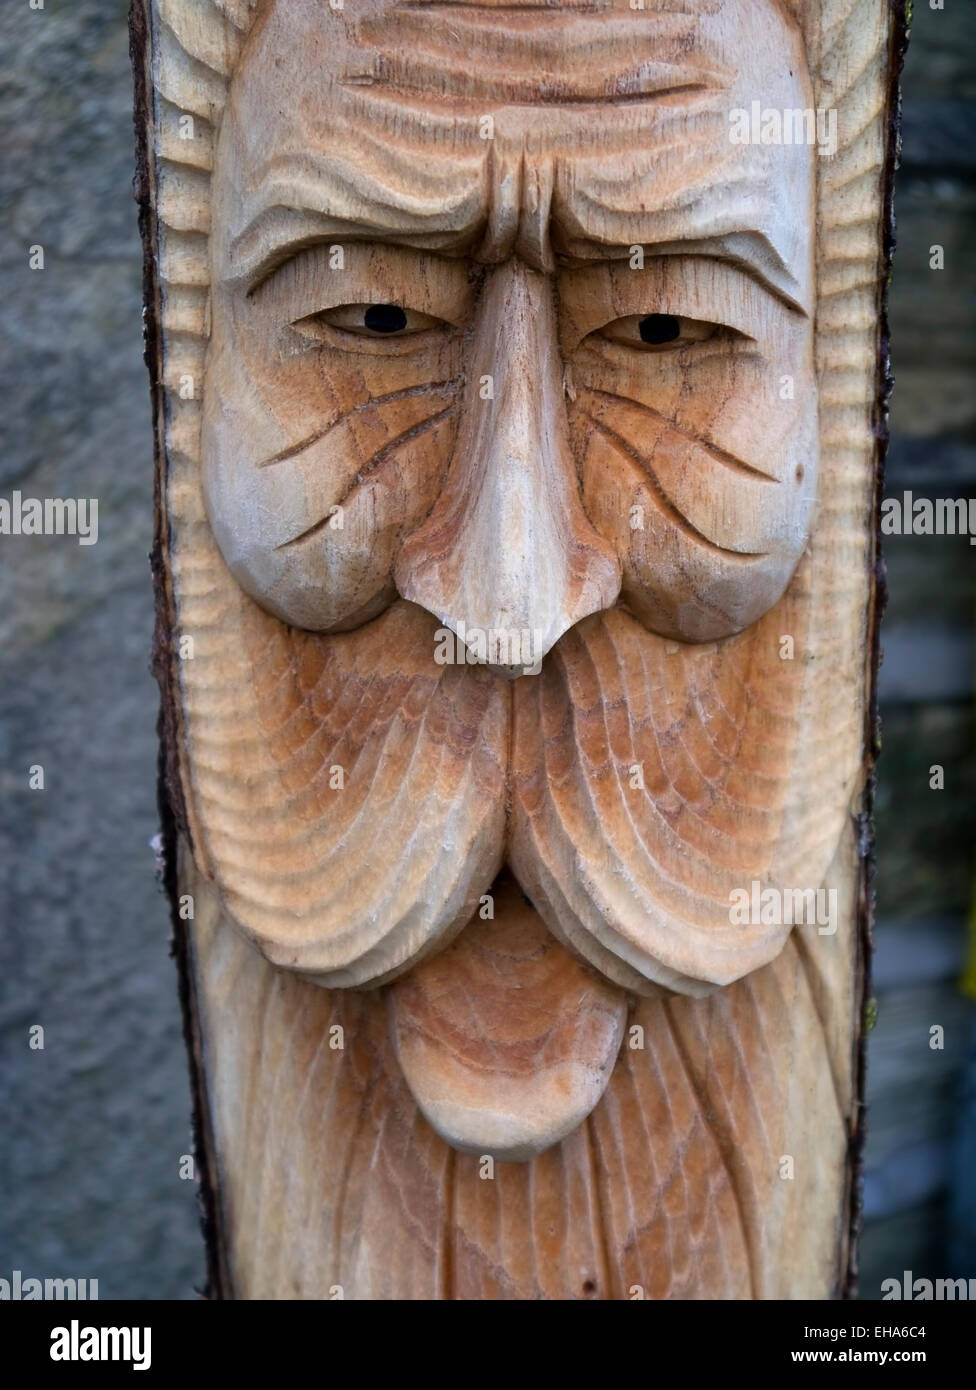 Carvings of wood spirit faces - Stock Image